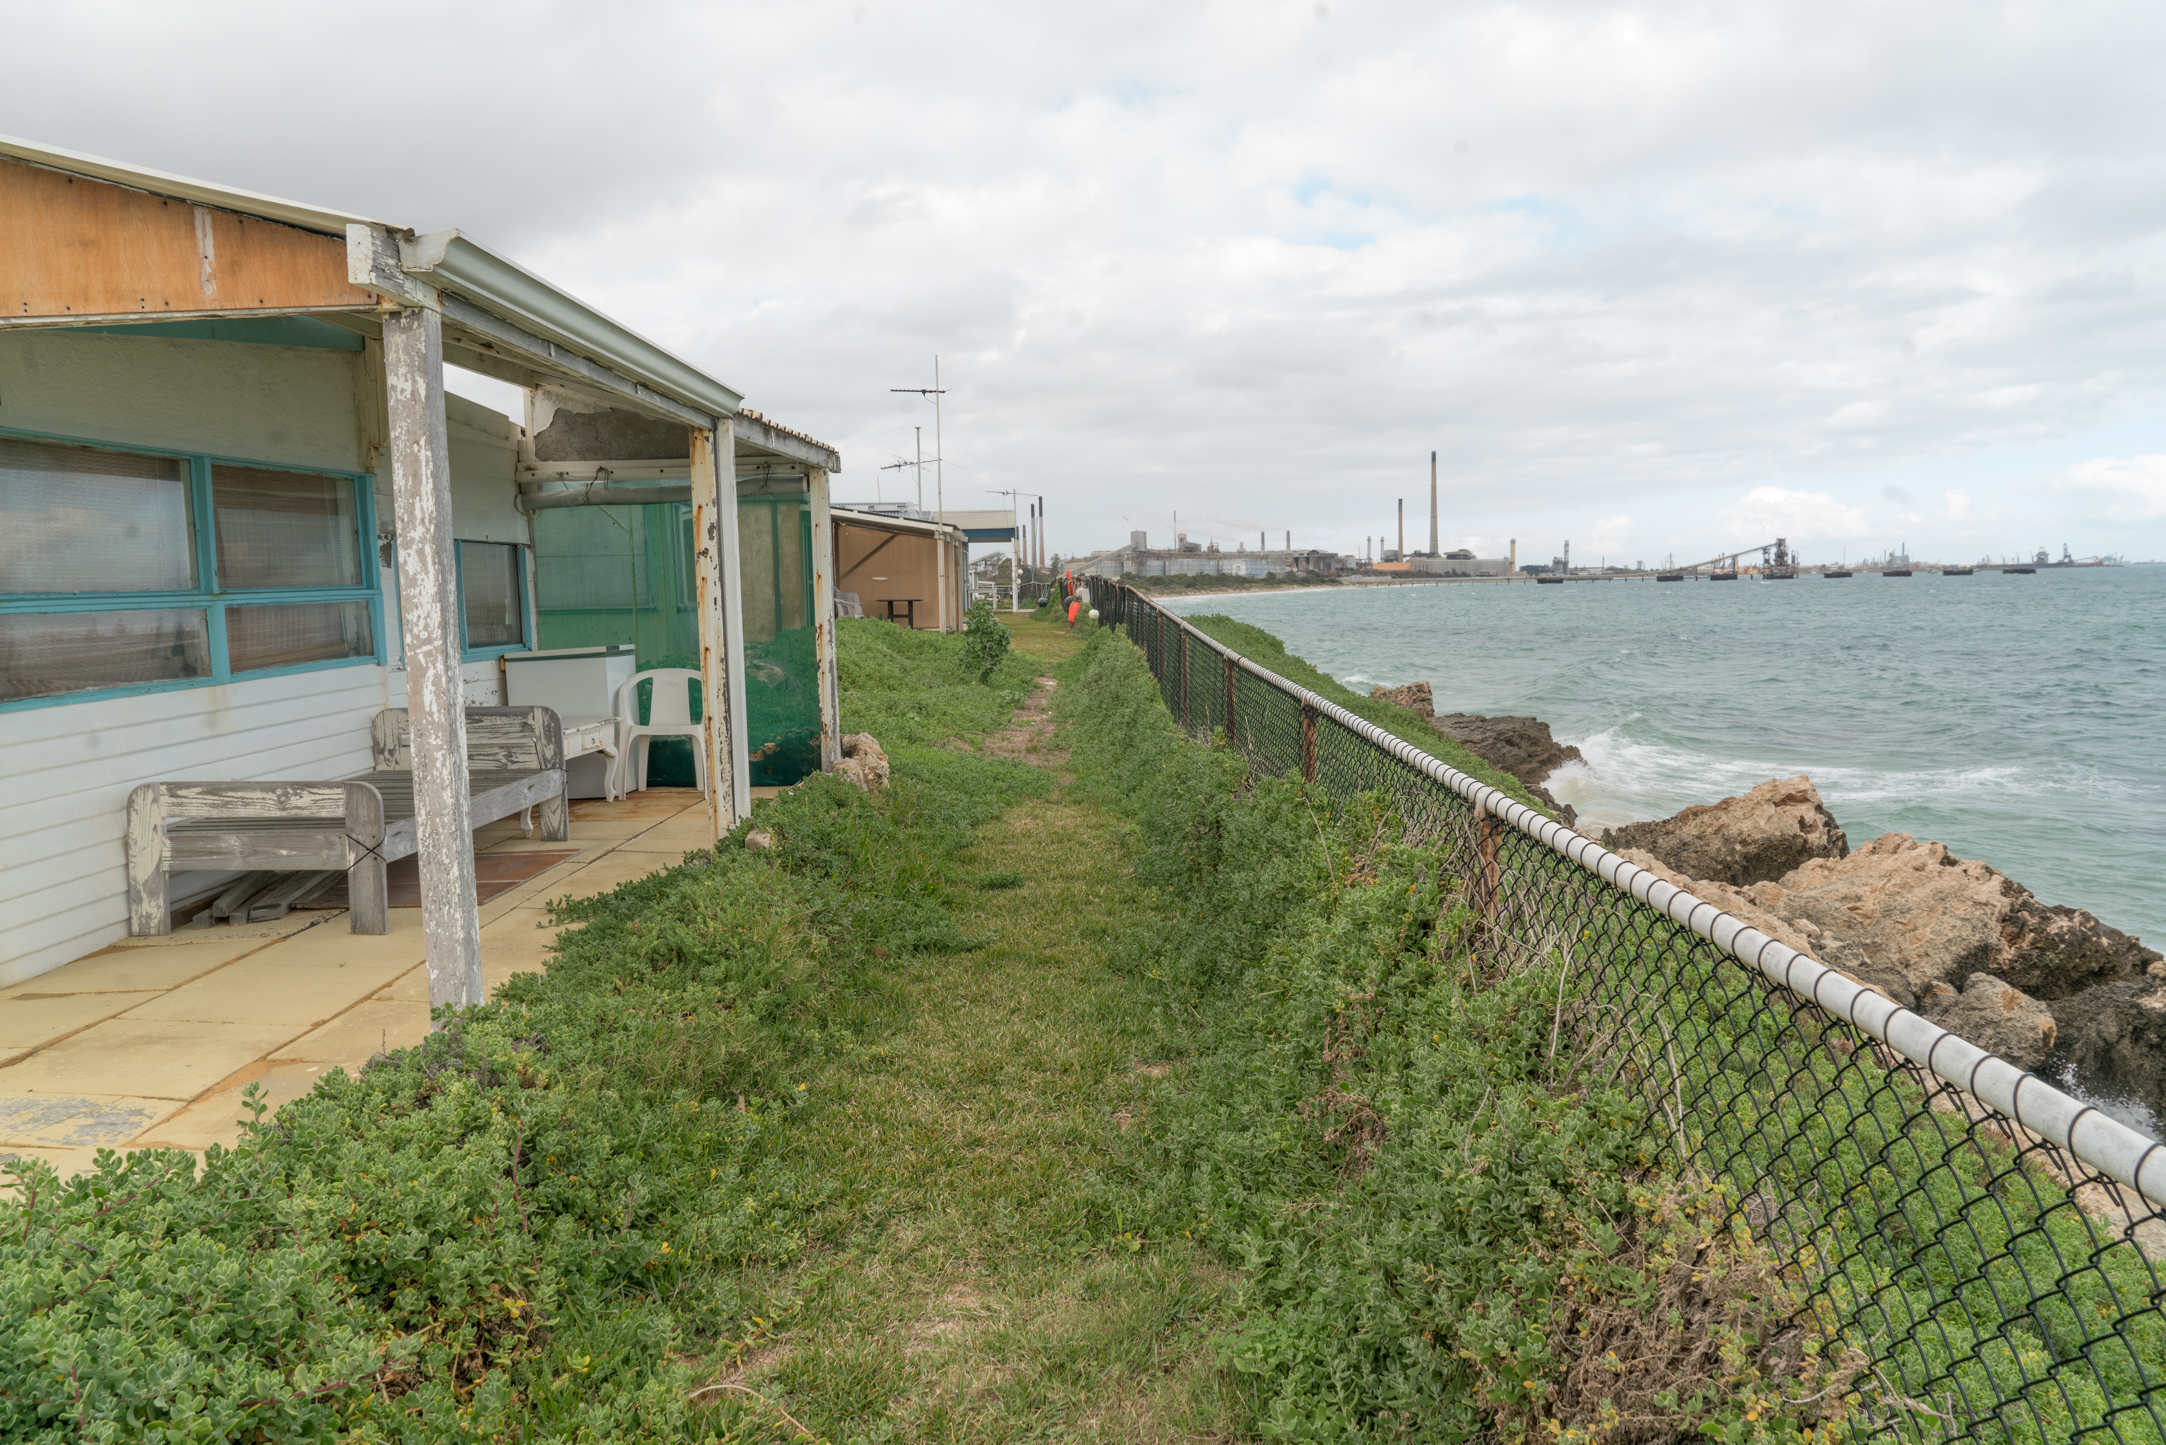 Plate 19: Narrow coastal path between some of the shacks and the fence